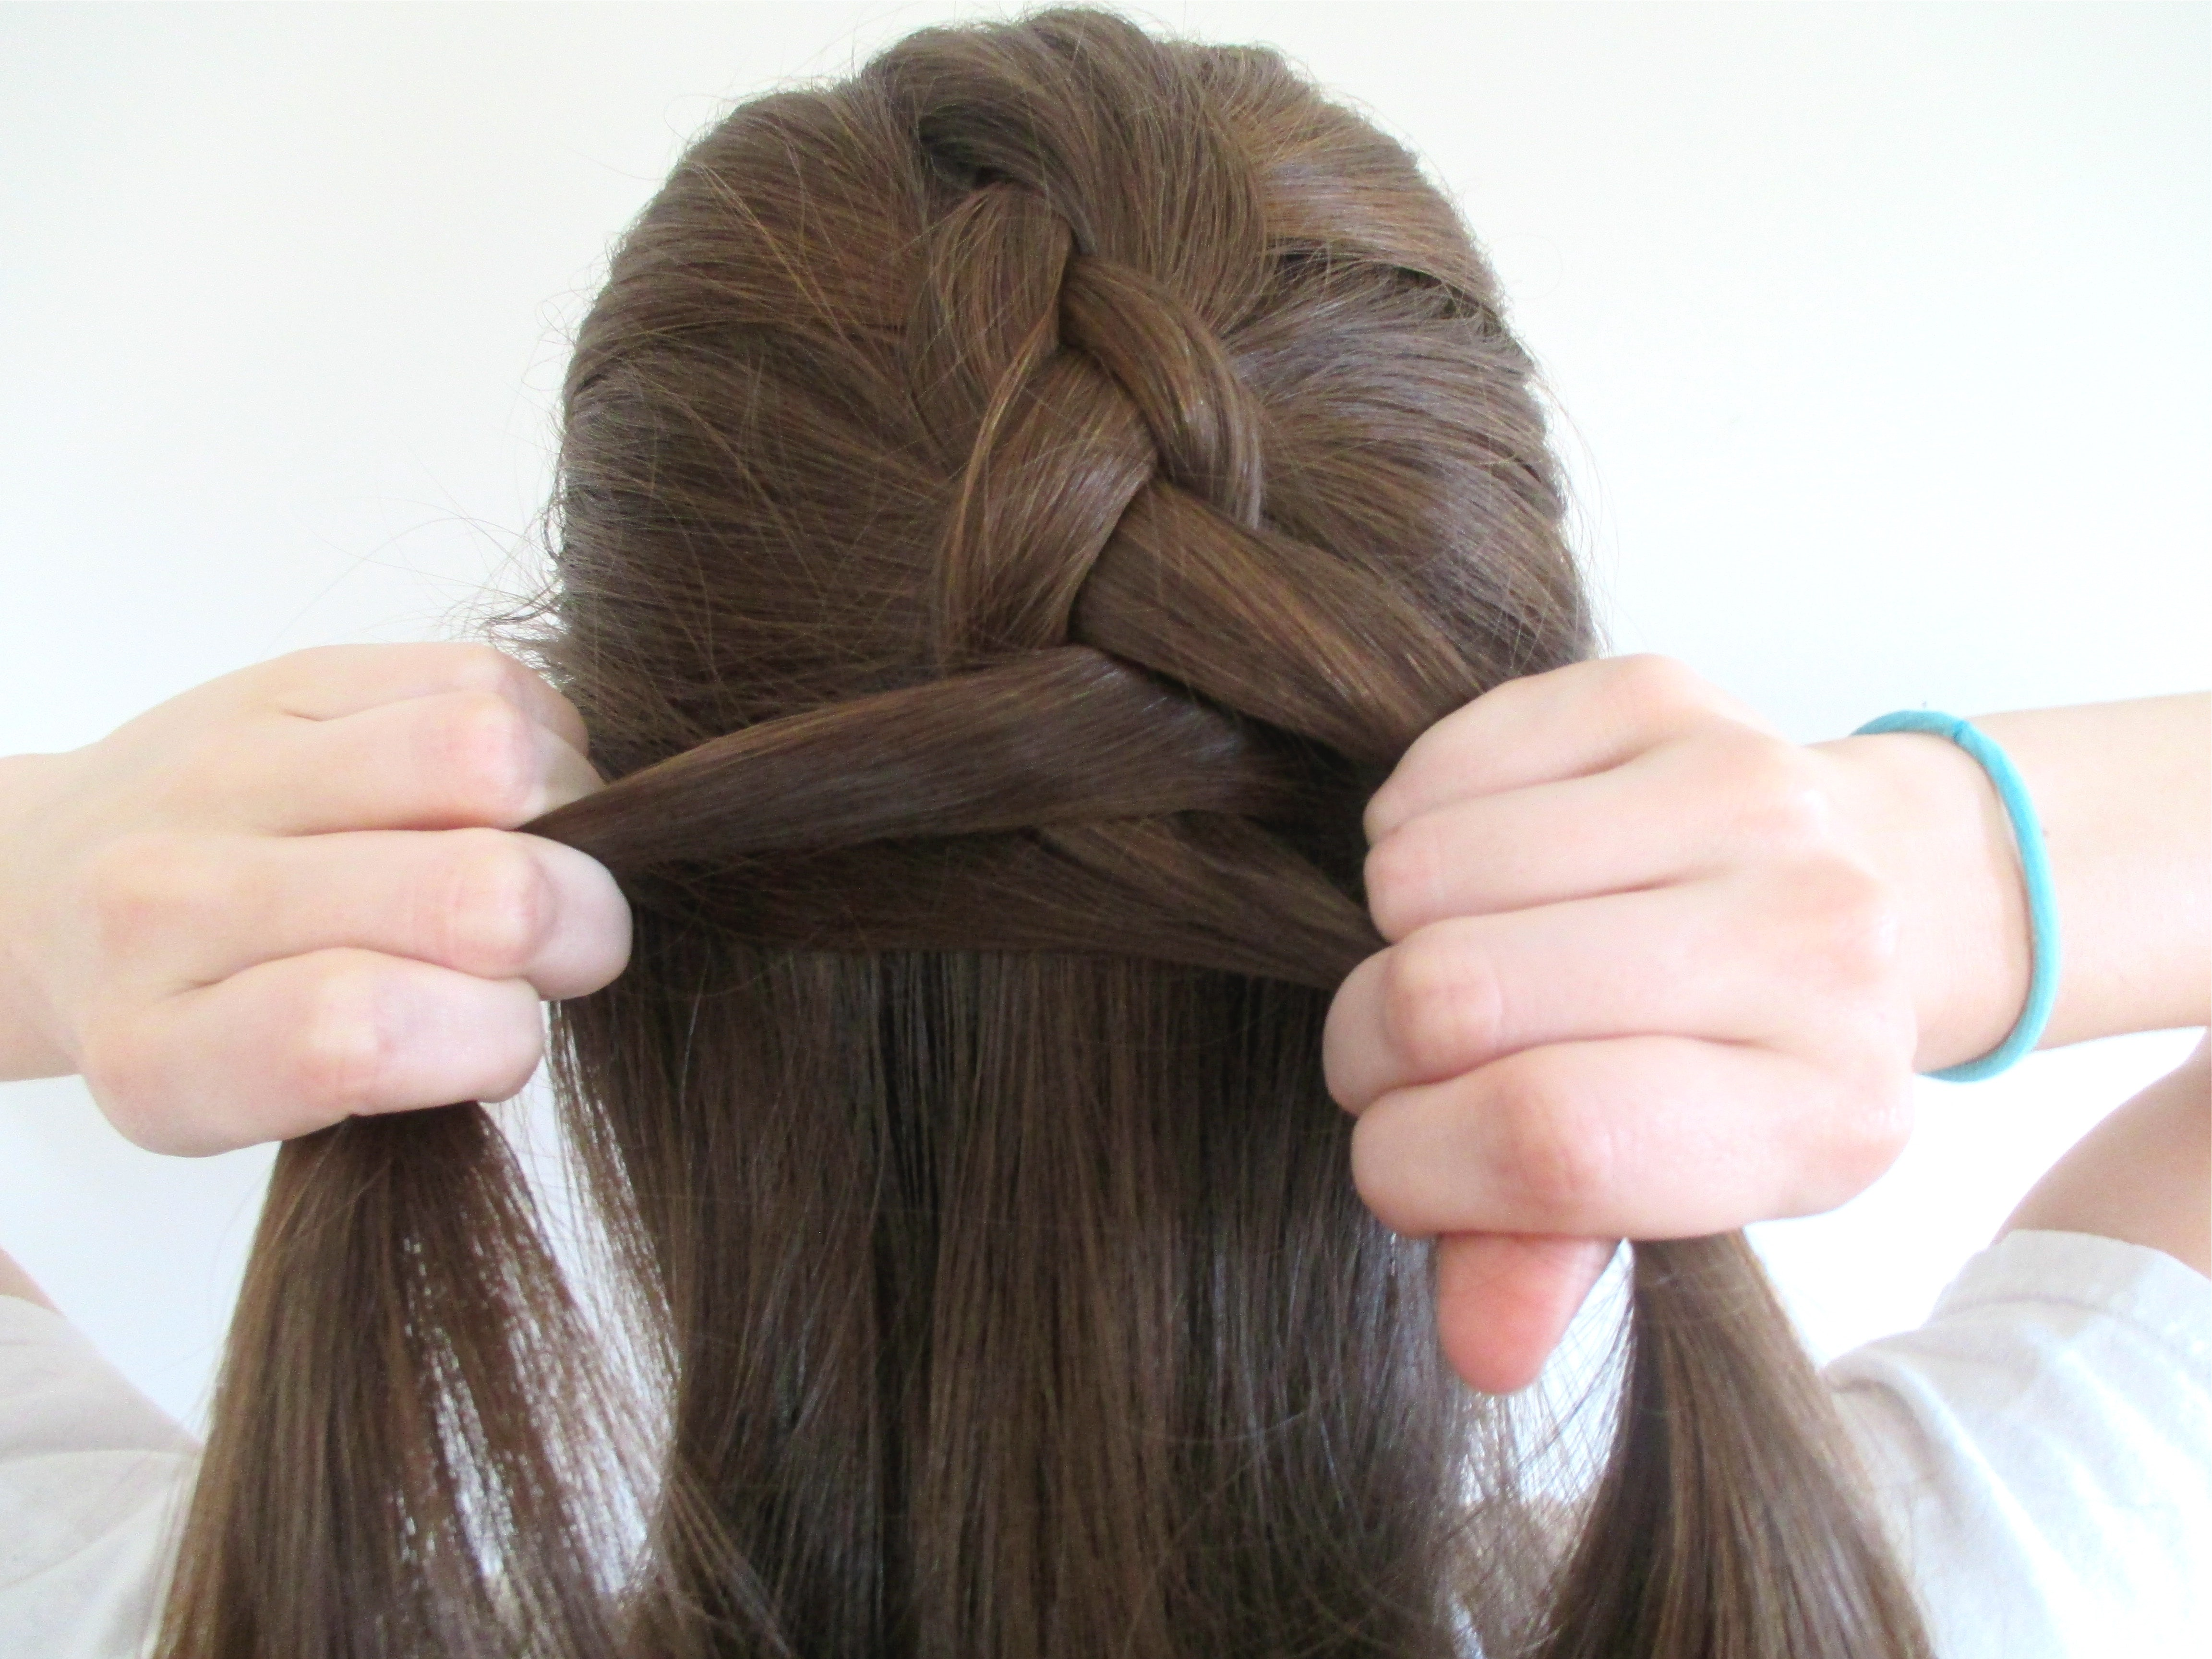 How To Reverse French Braid In 5 Steps  Then Turn It Into A Faux Hawk